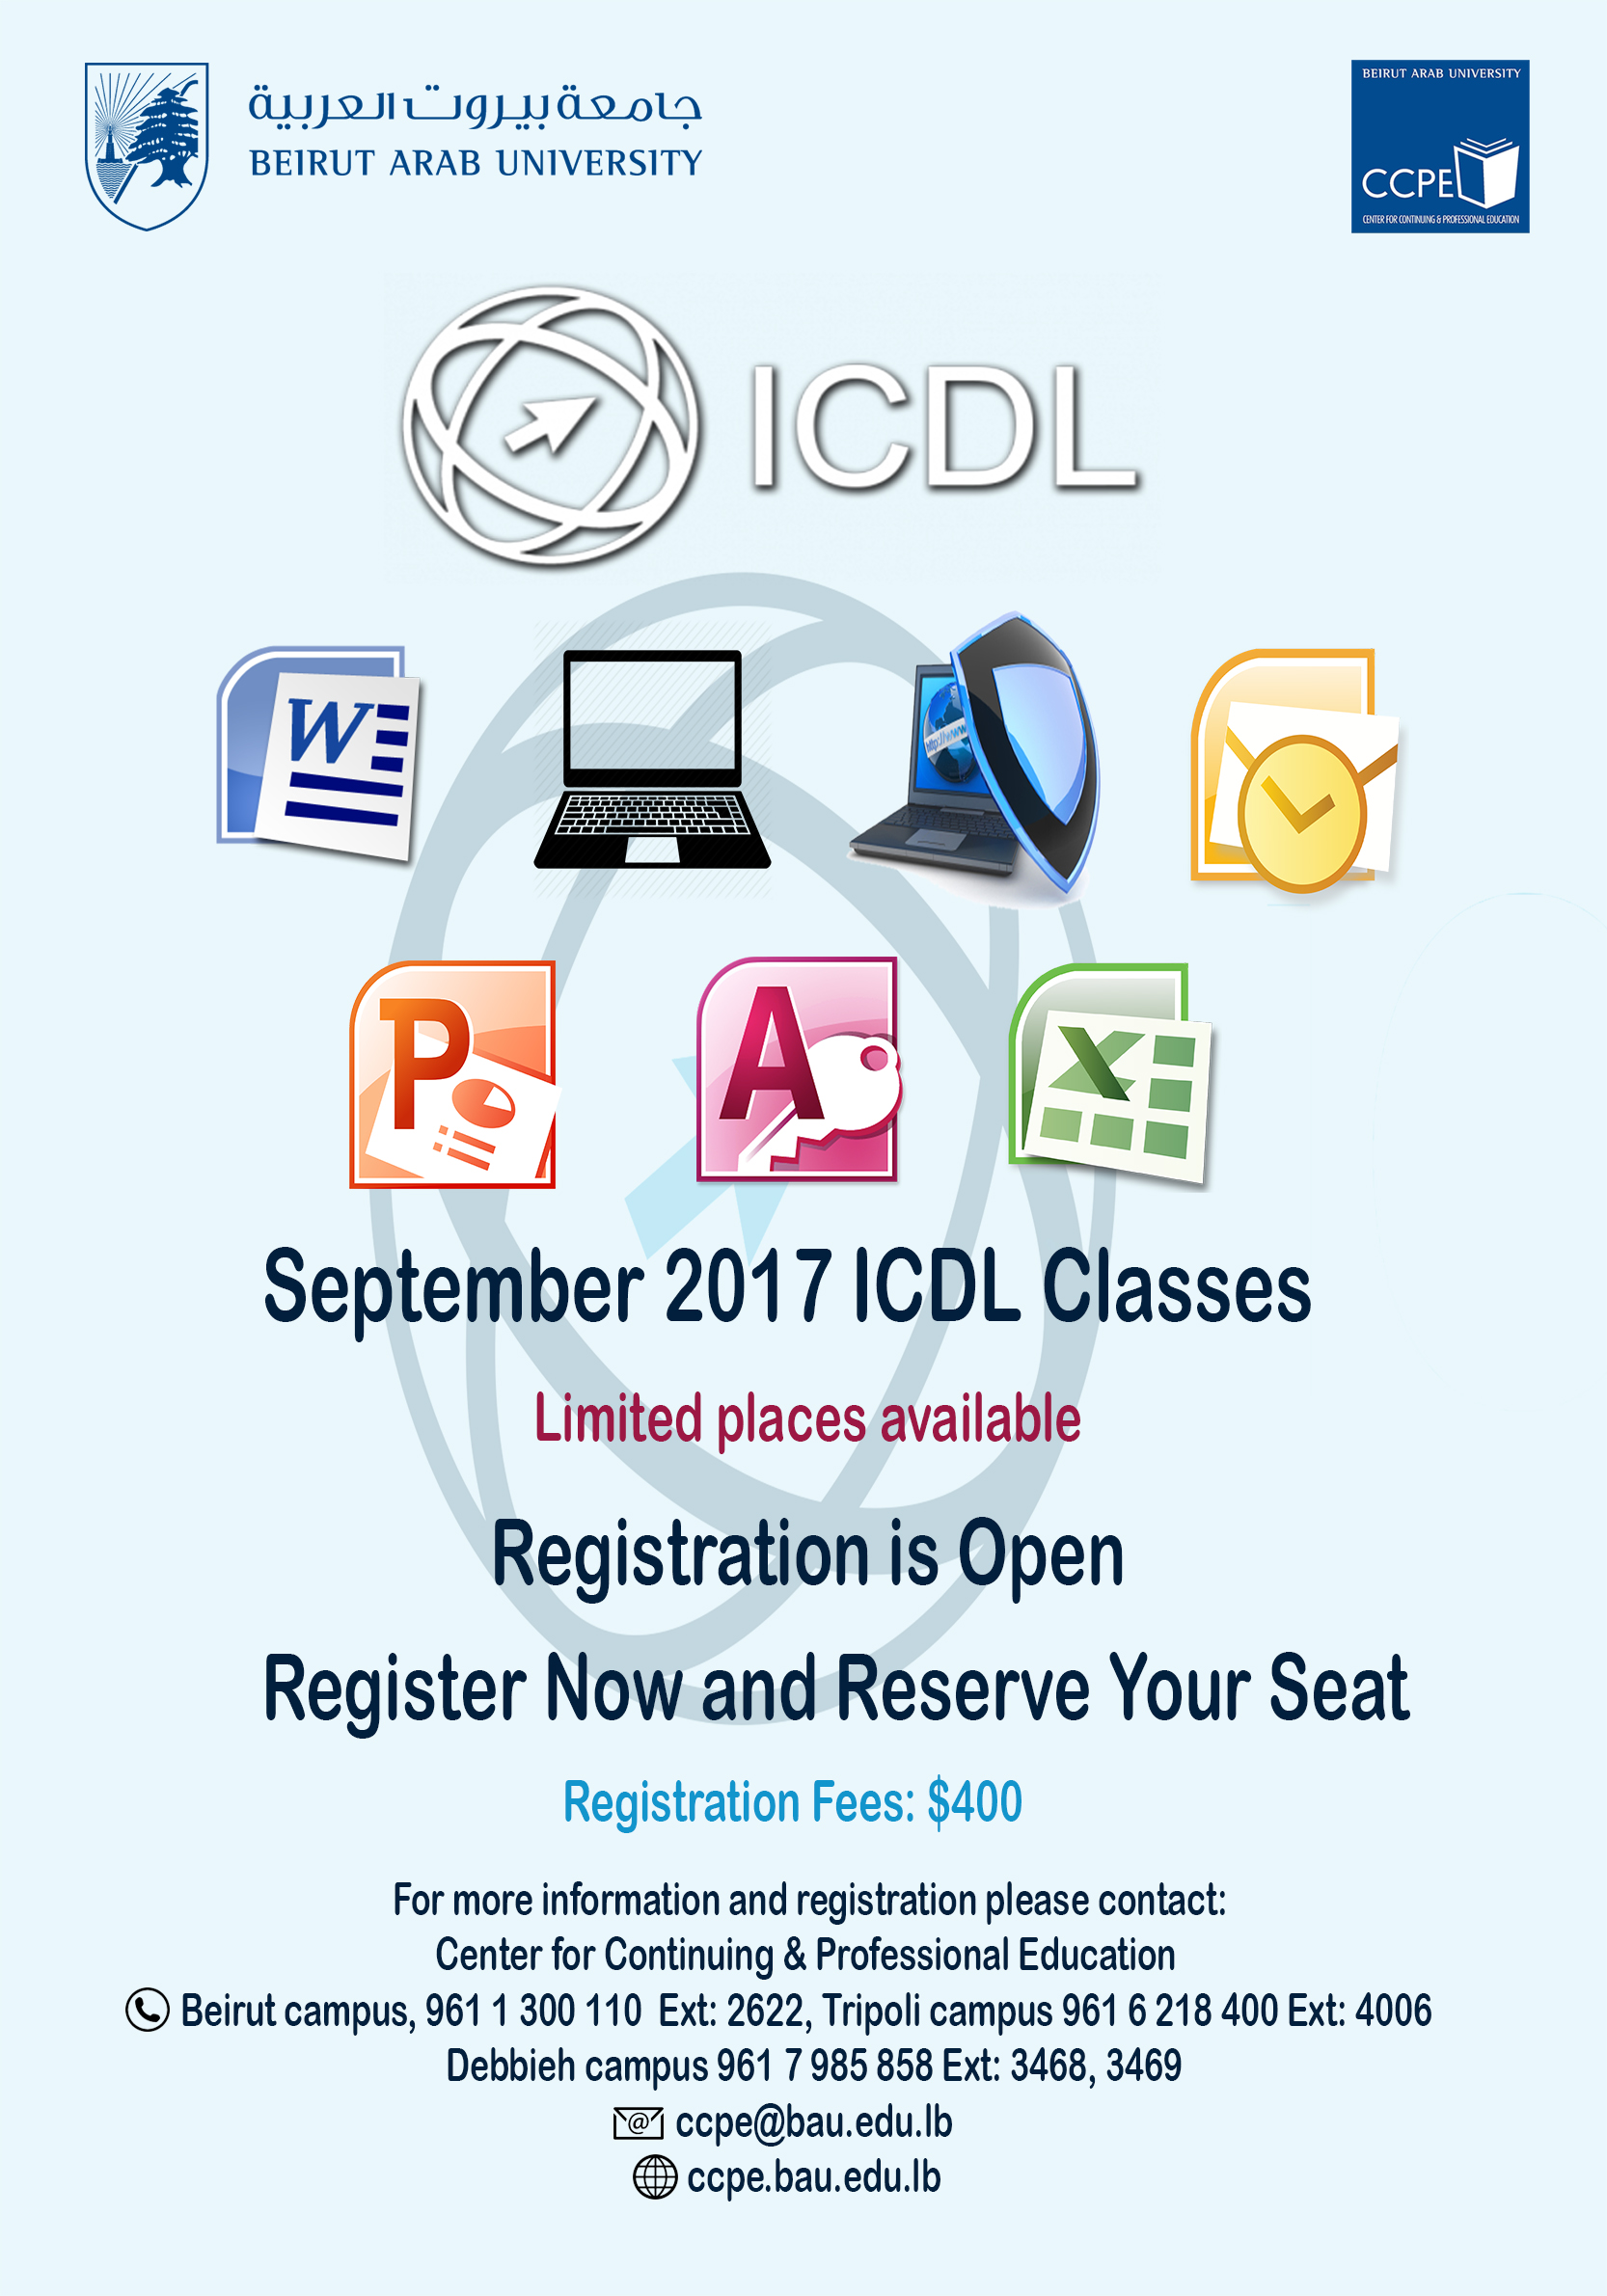 ICDL (International Computer Driving License)